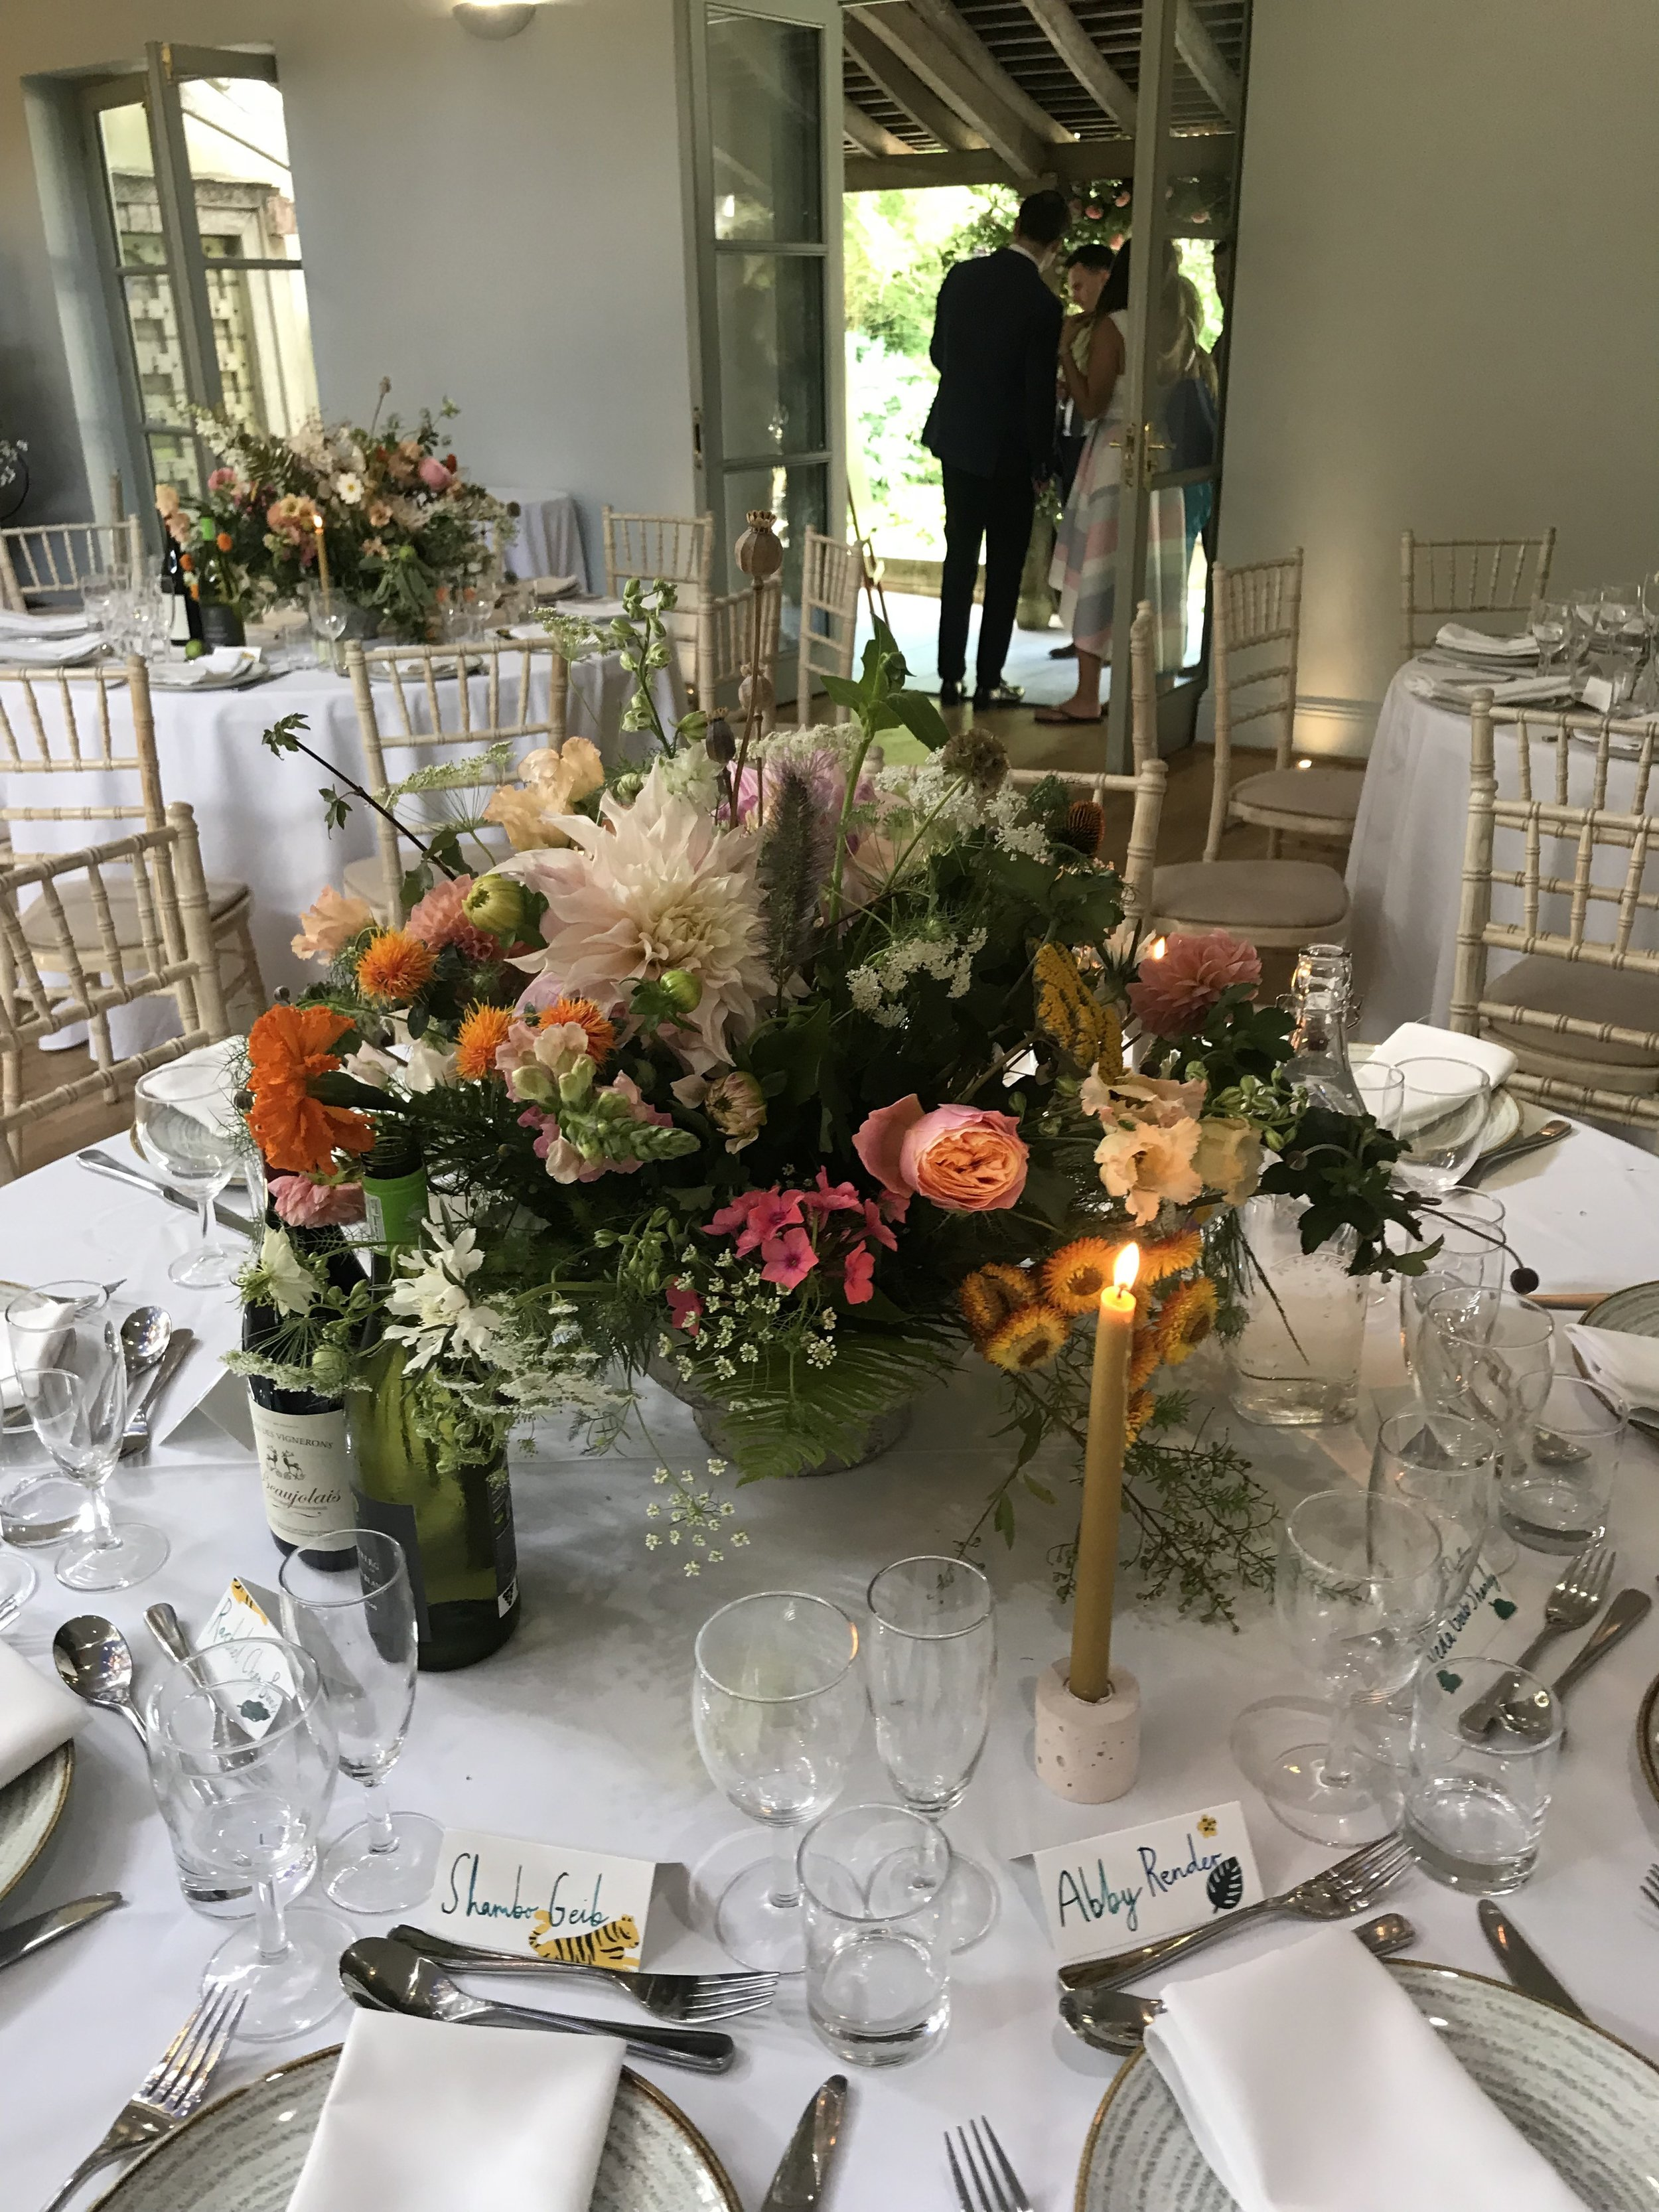 Nice Bunch Ethical floral design studio flower garden by Sula British luxury Matara Centre table placement wedding